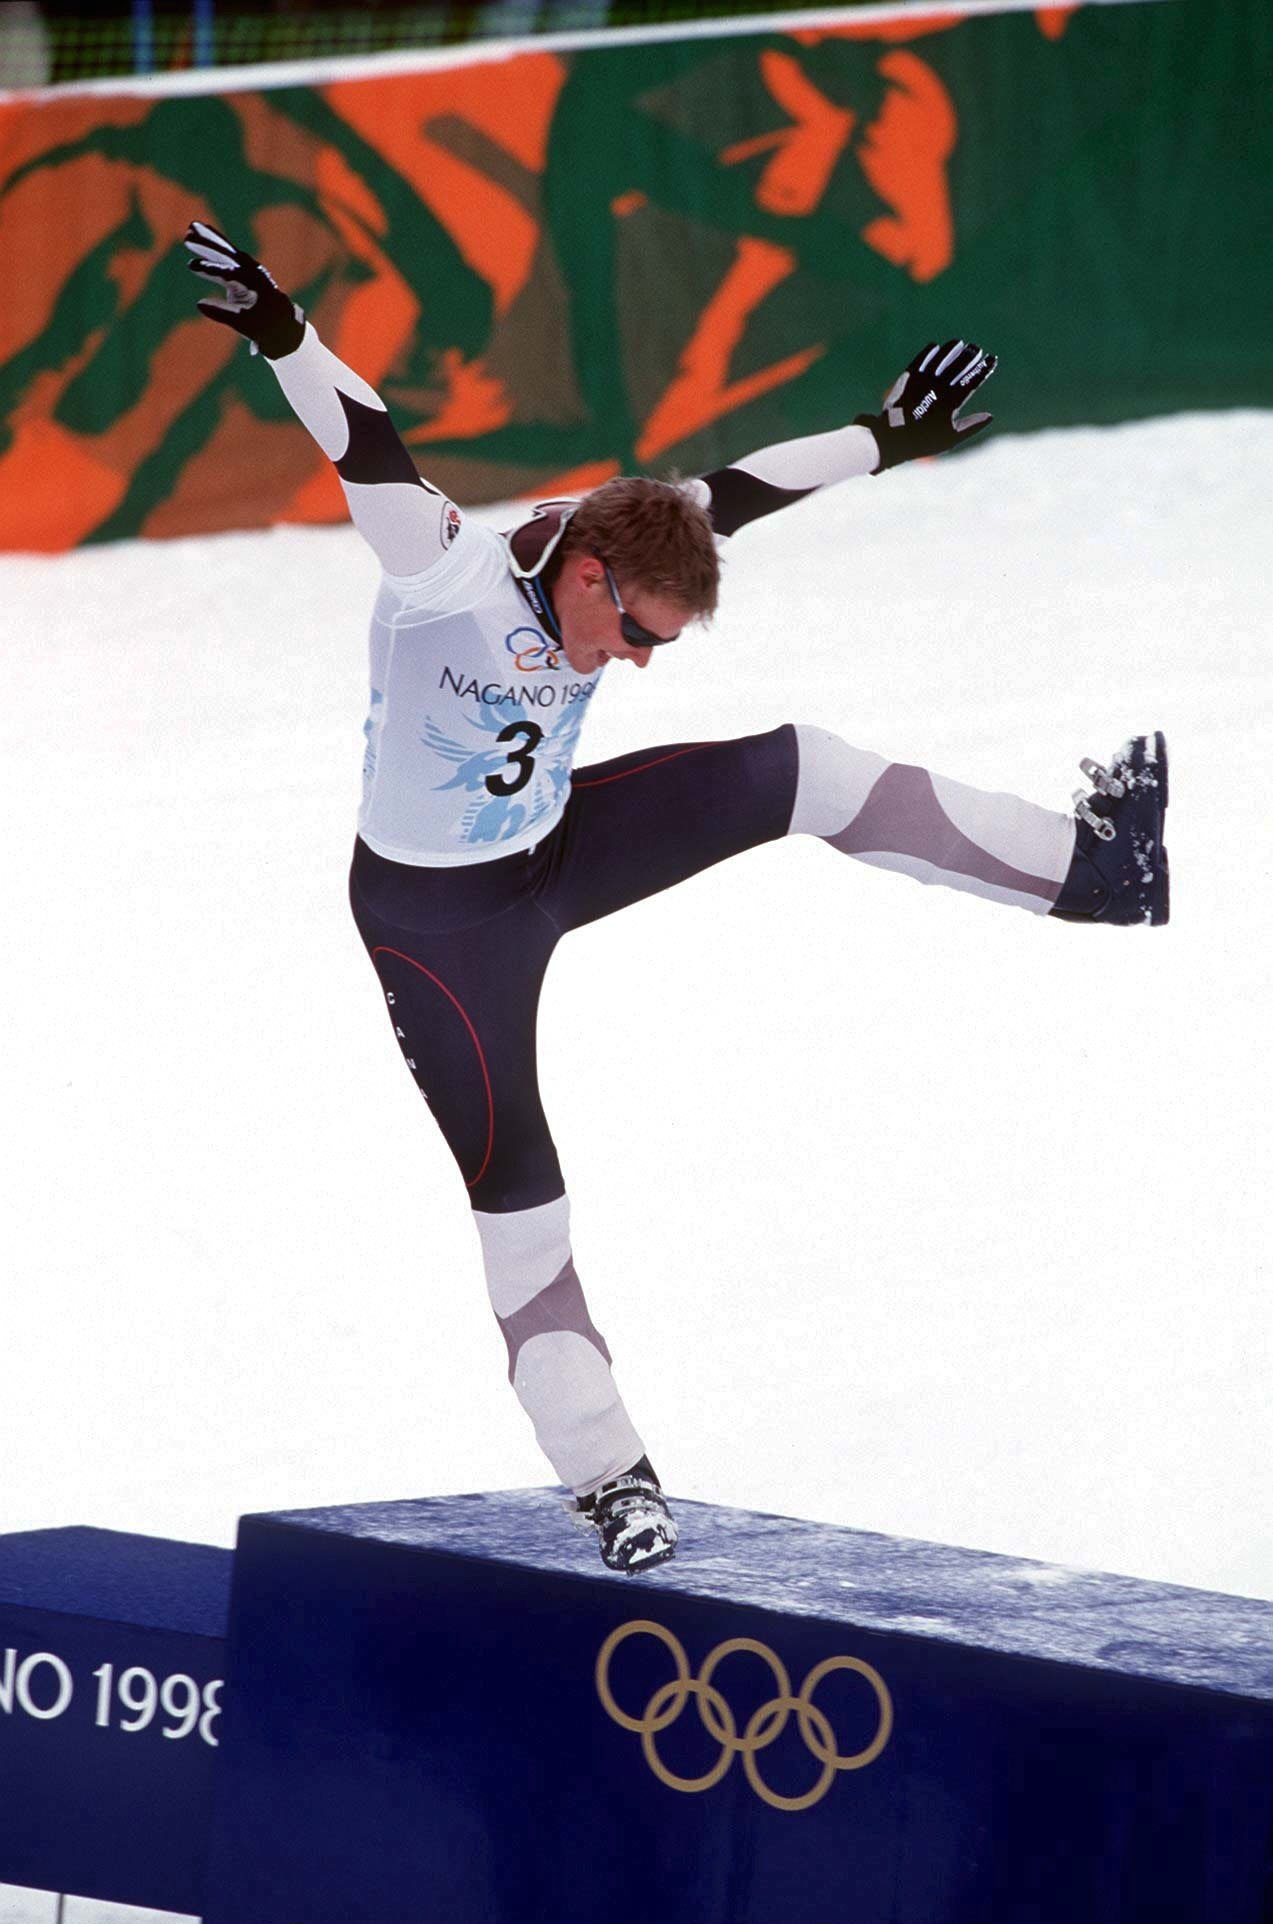 Canada's Ross Rebagliati arrives on the winners podium at the 1998 Nagano Winter Games as the first Olympic snowboard champion - a title he then lost, and regained after an issue with a positive sample for marijuana ©Getty Images